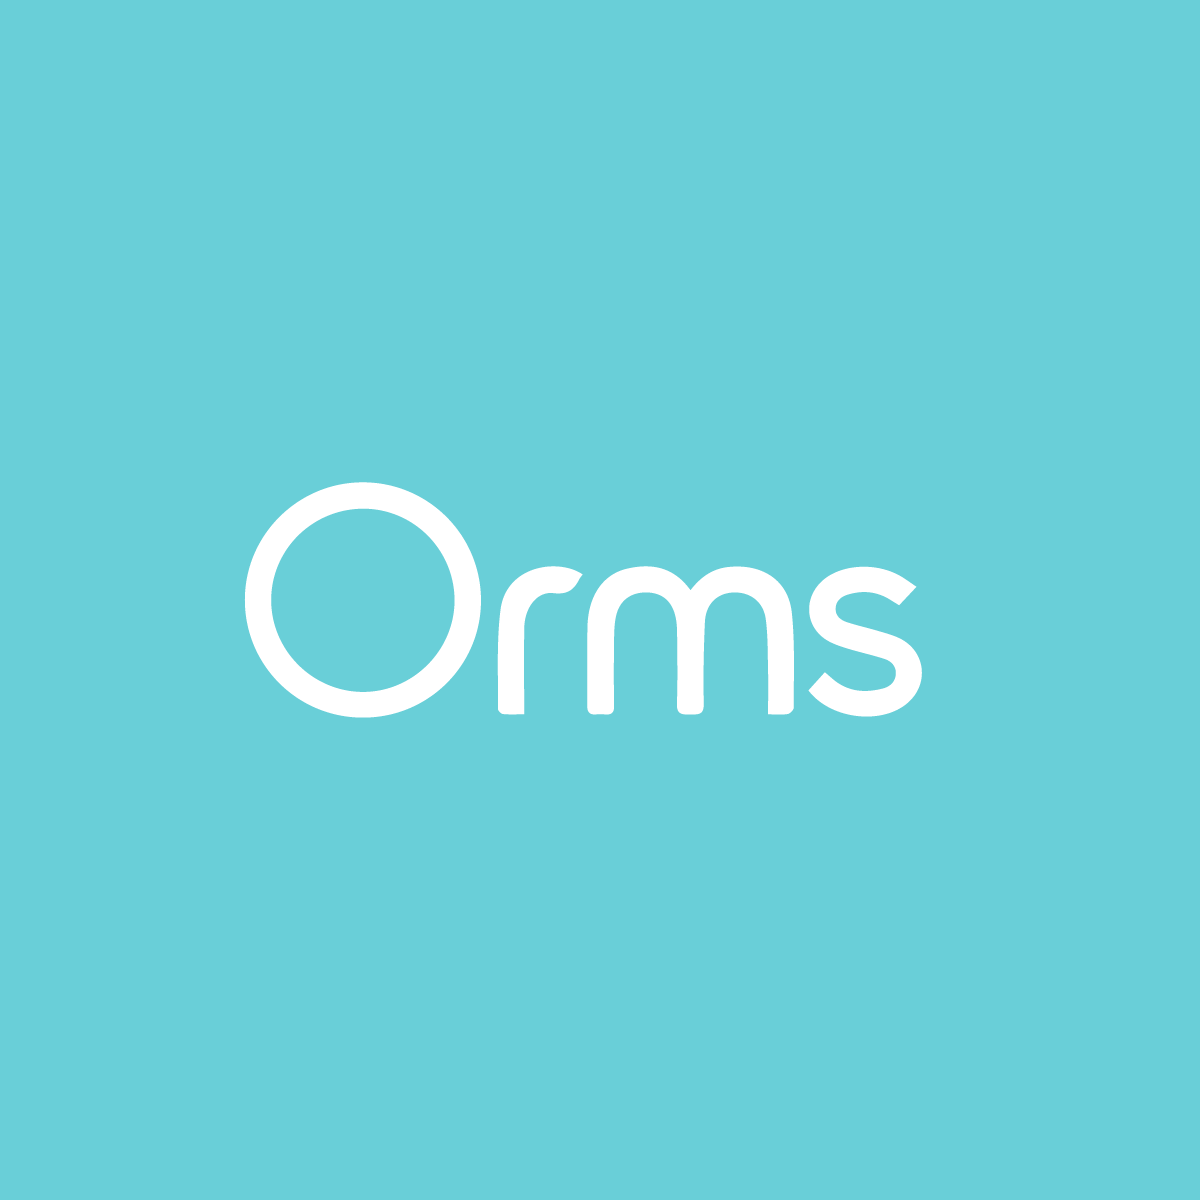 Orms_2.png